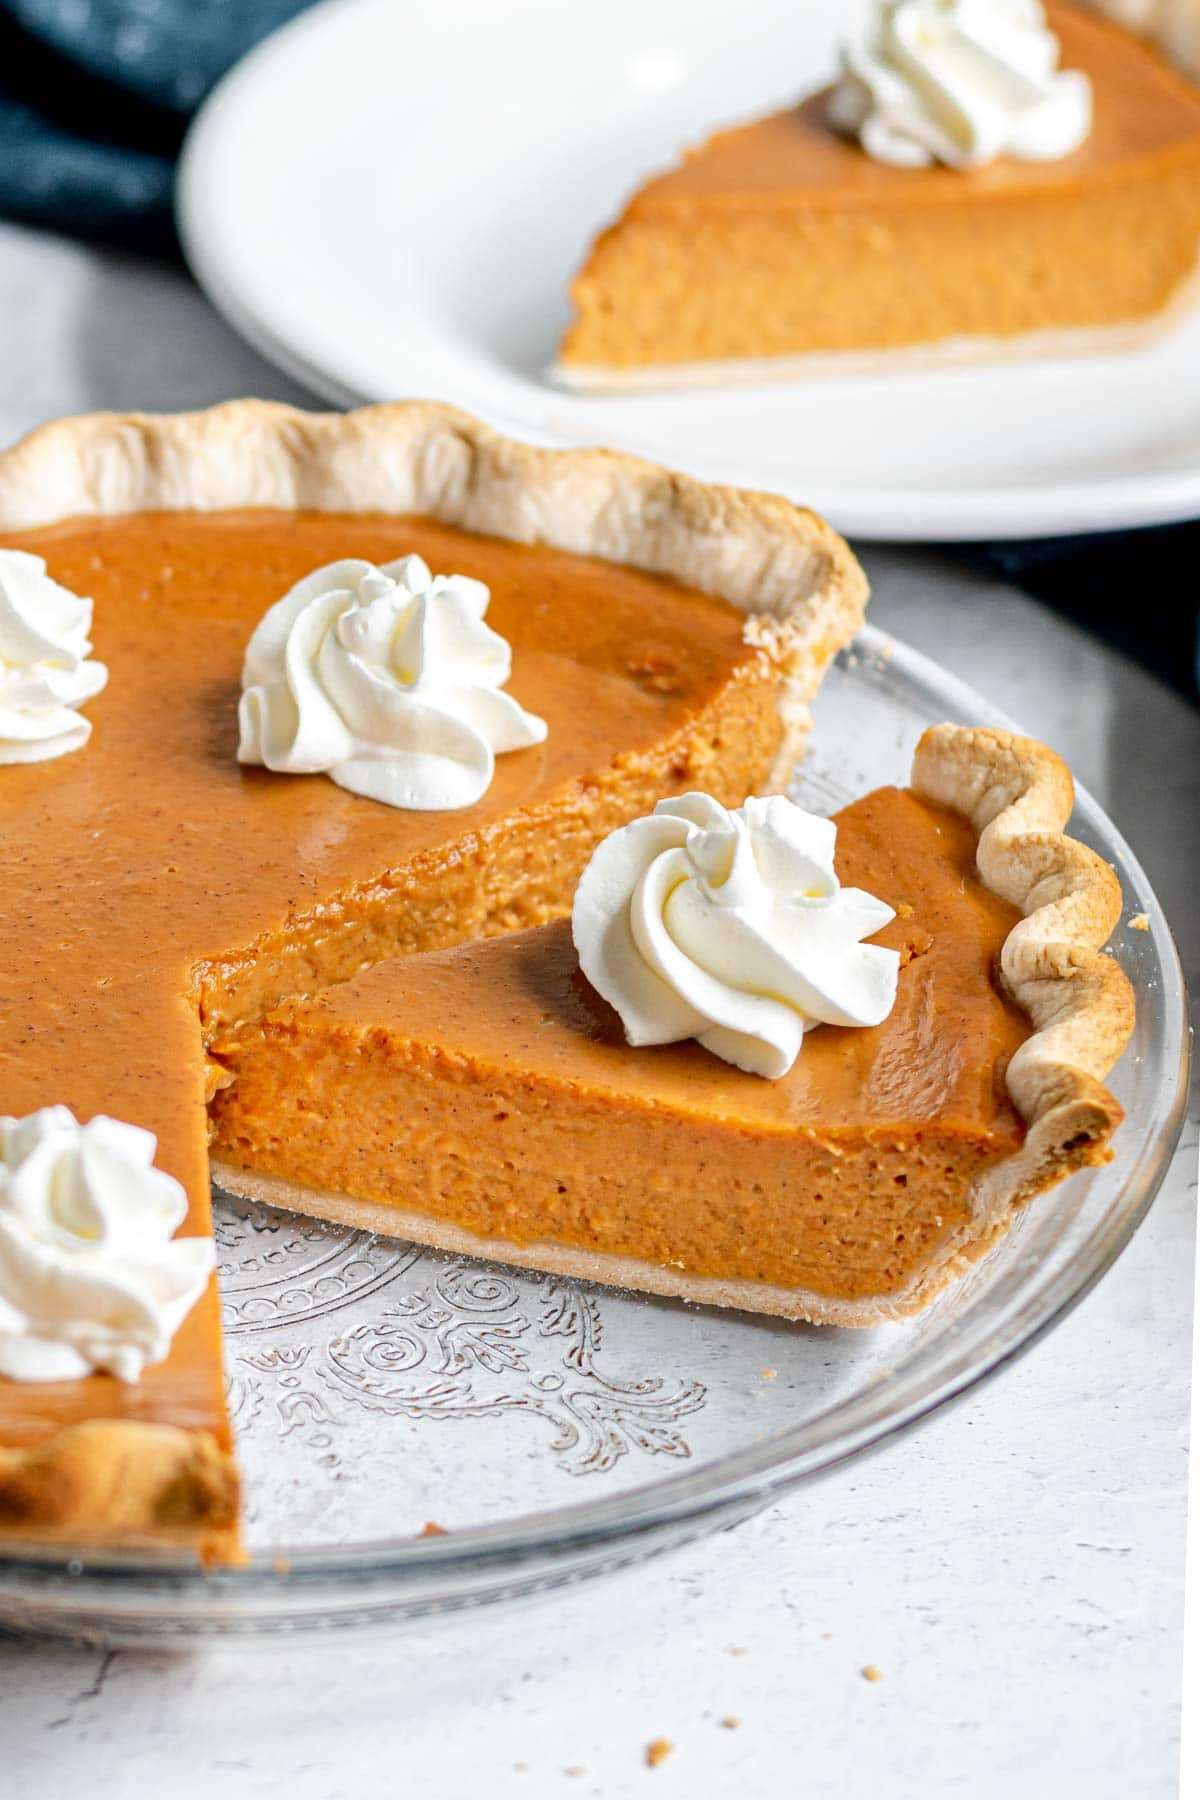 5 Ingredient Pumpkin Pie with whipped cream